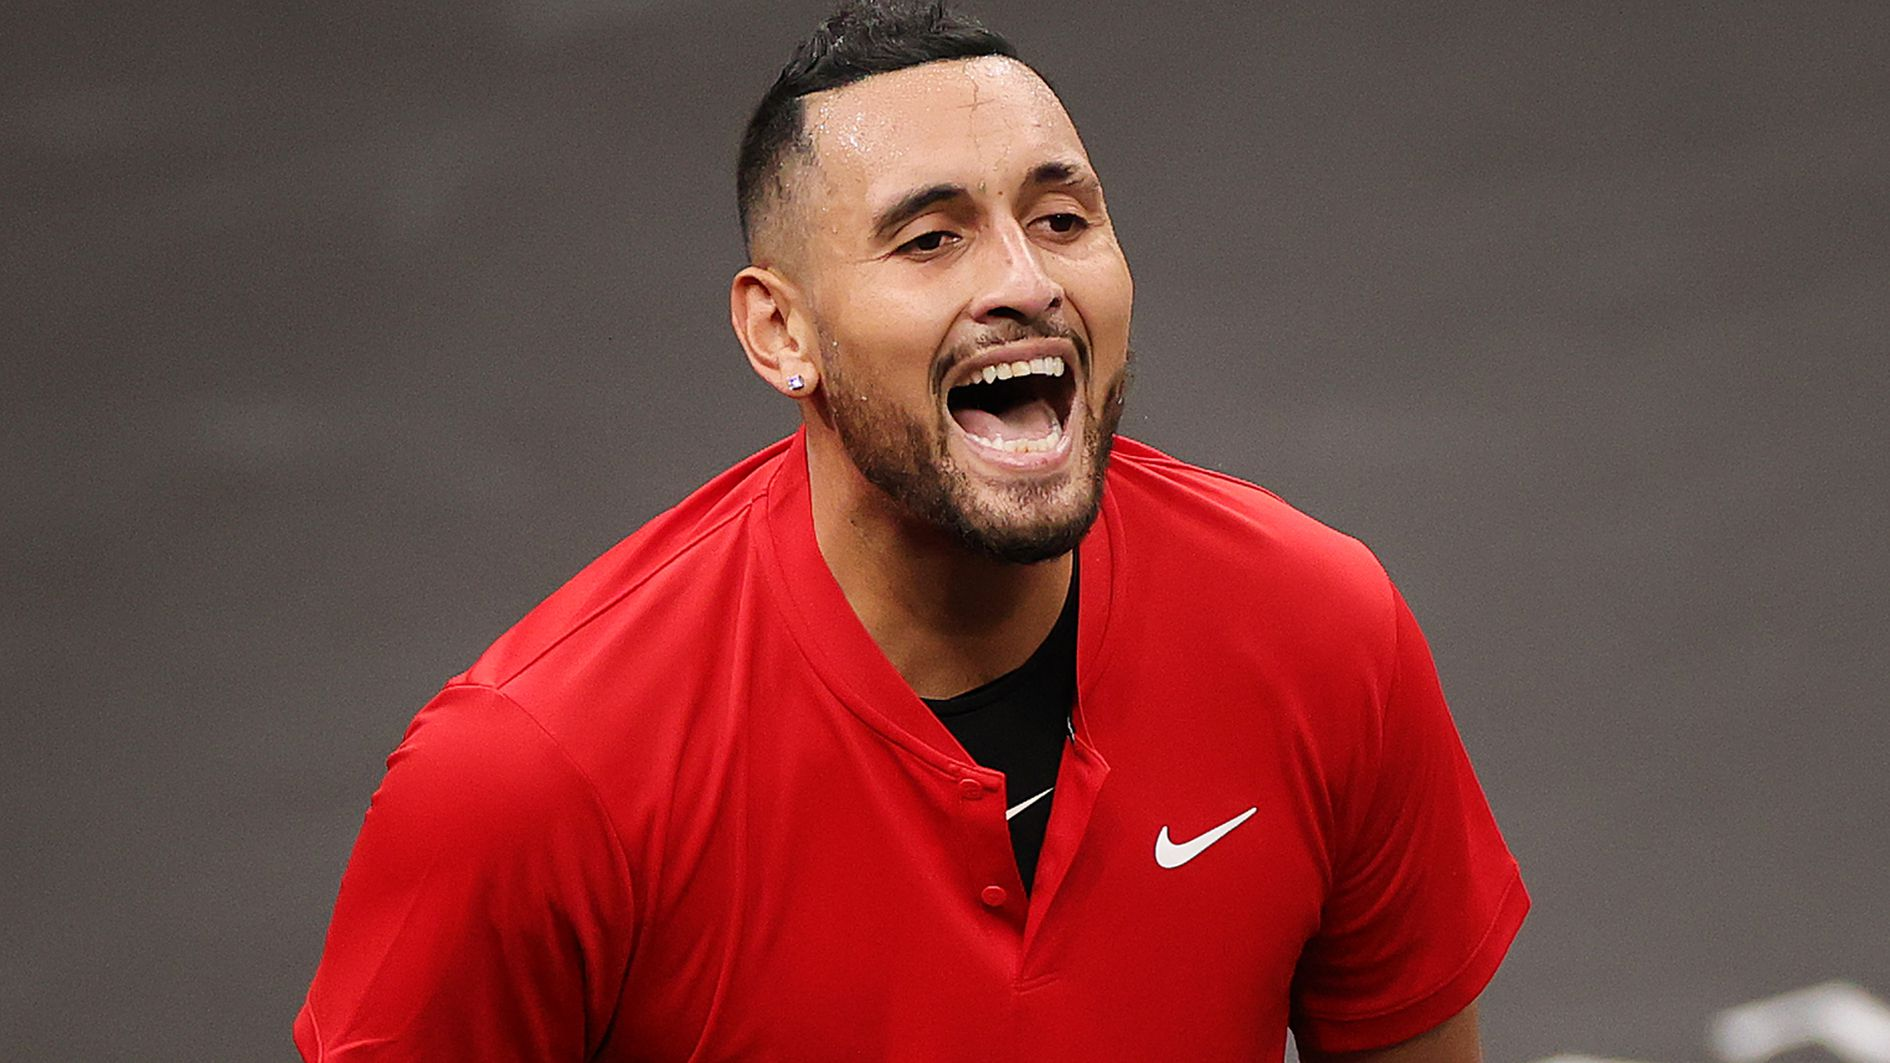 Nick Kyrgios drops retirement bombshell after Laver Cup loss